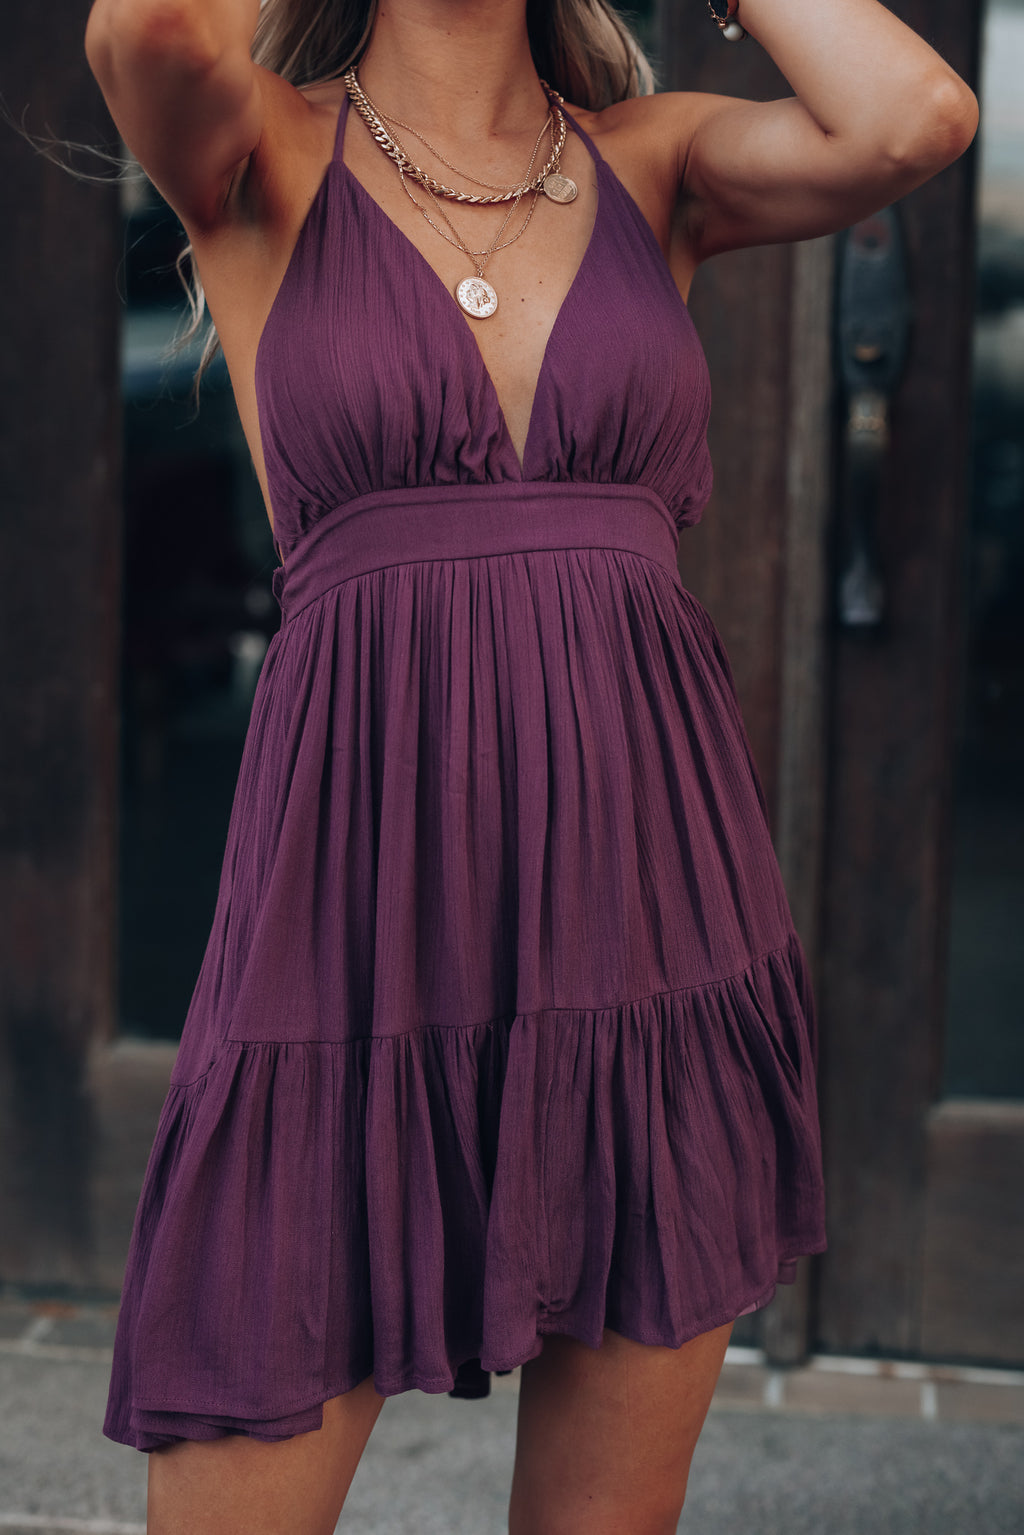 PRE-ORDER Ryan Halter Mini Dress (Plum) Ships Mid June